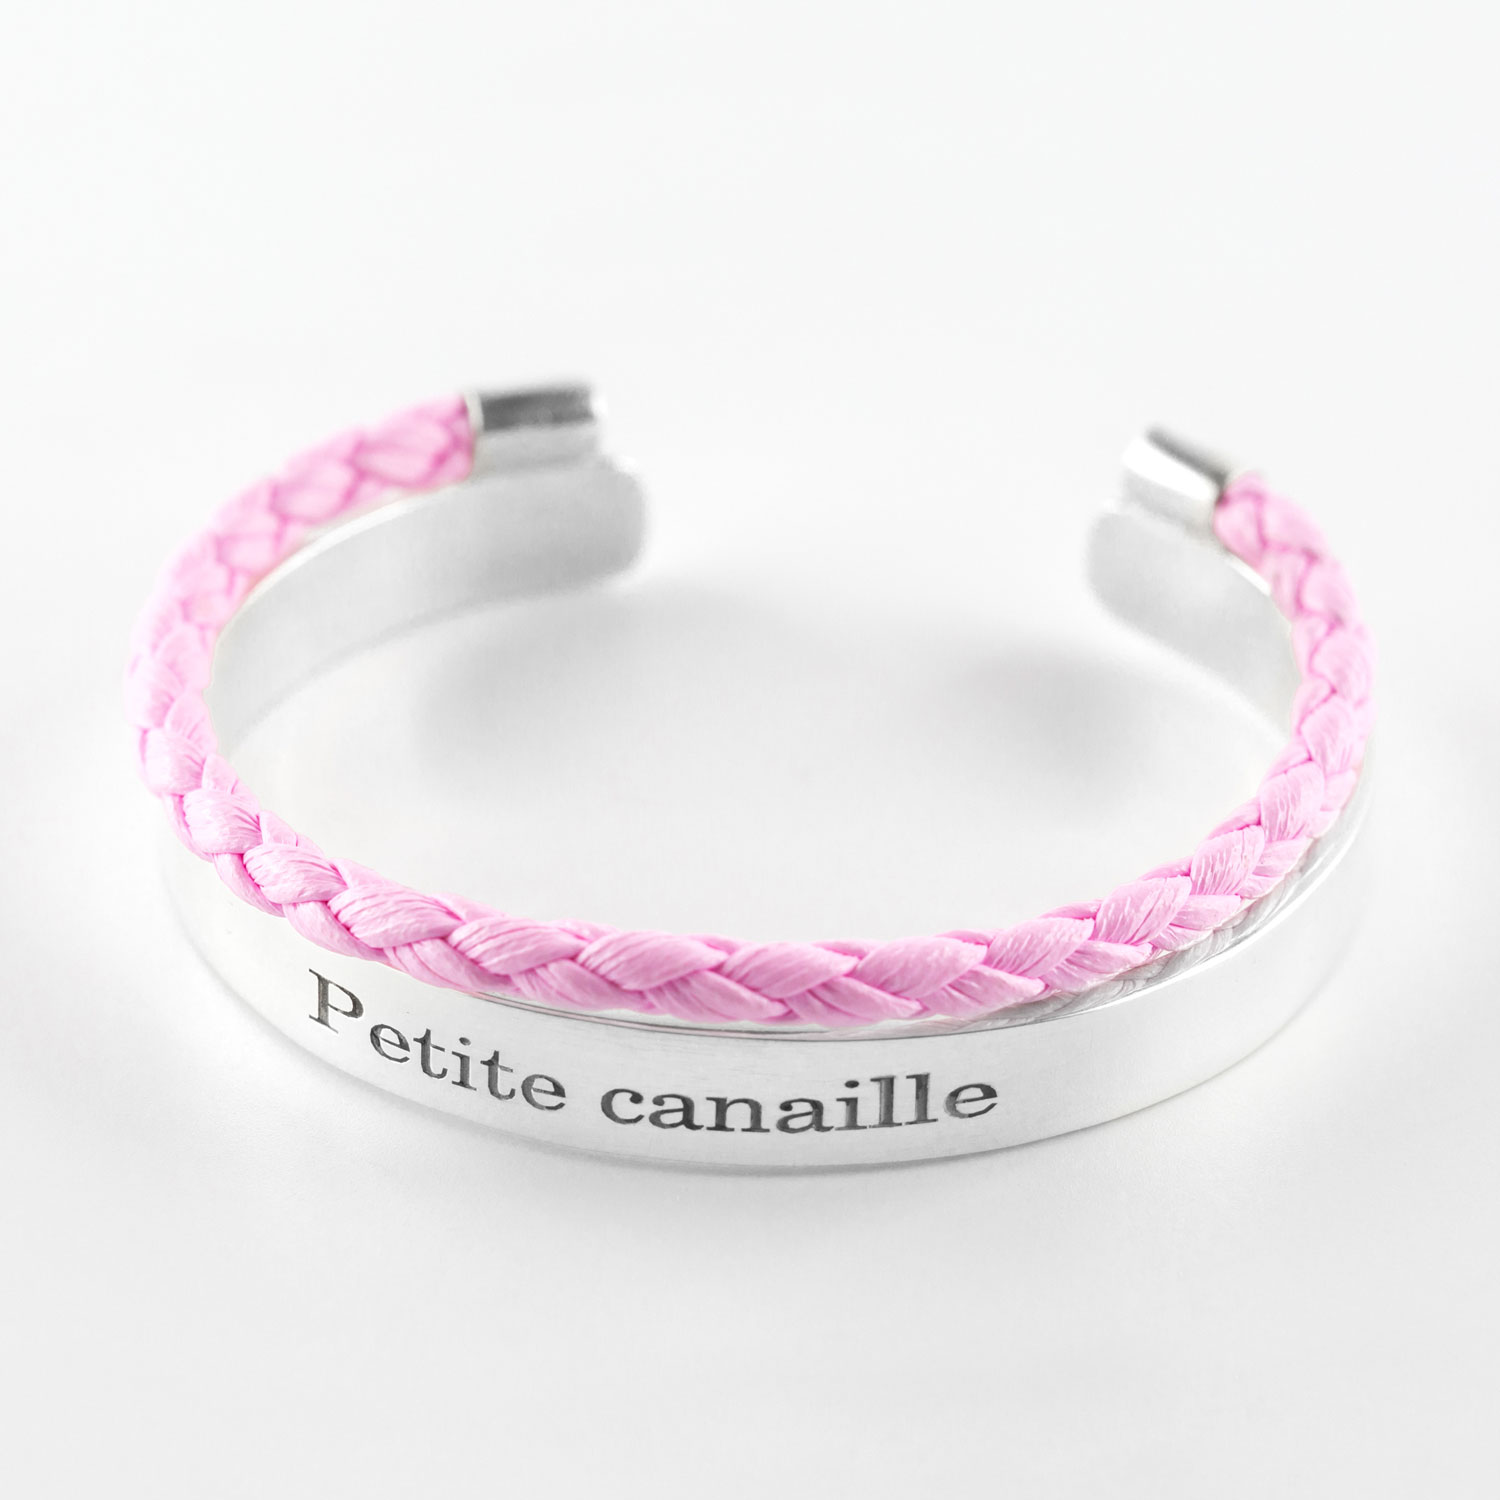 "Child's solid silver bangle with inscription ""Petite canaille"" and pink leather cord"